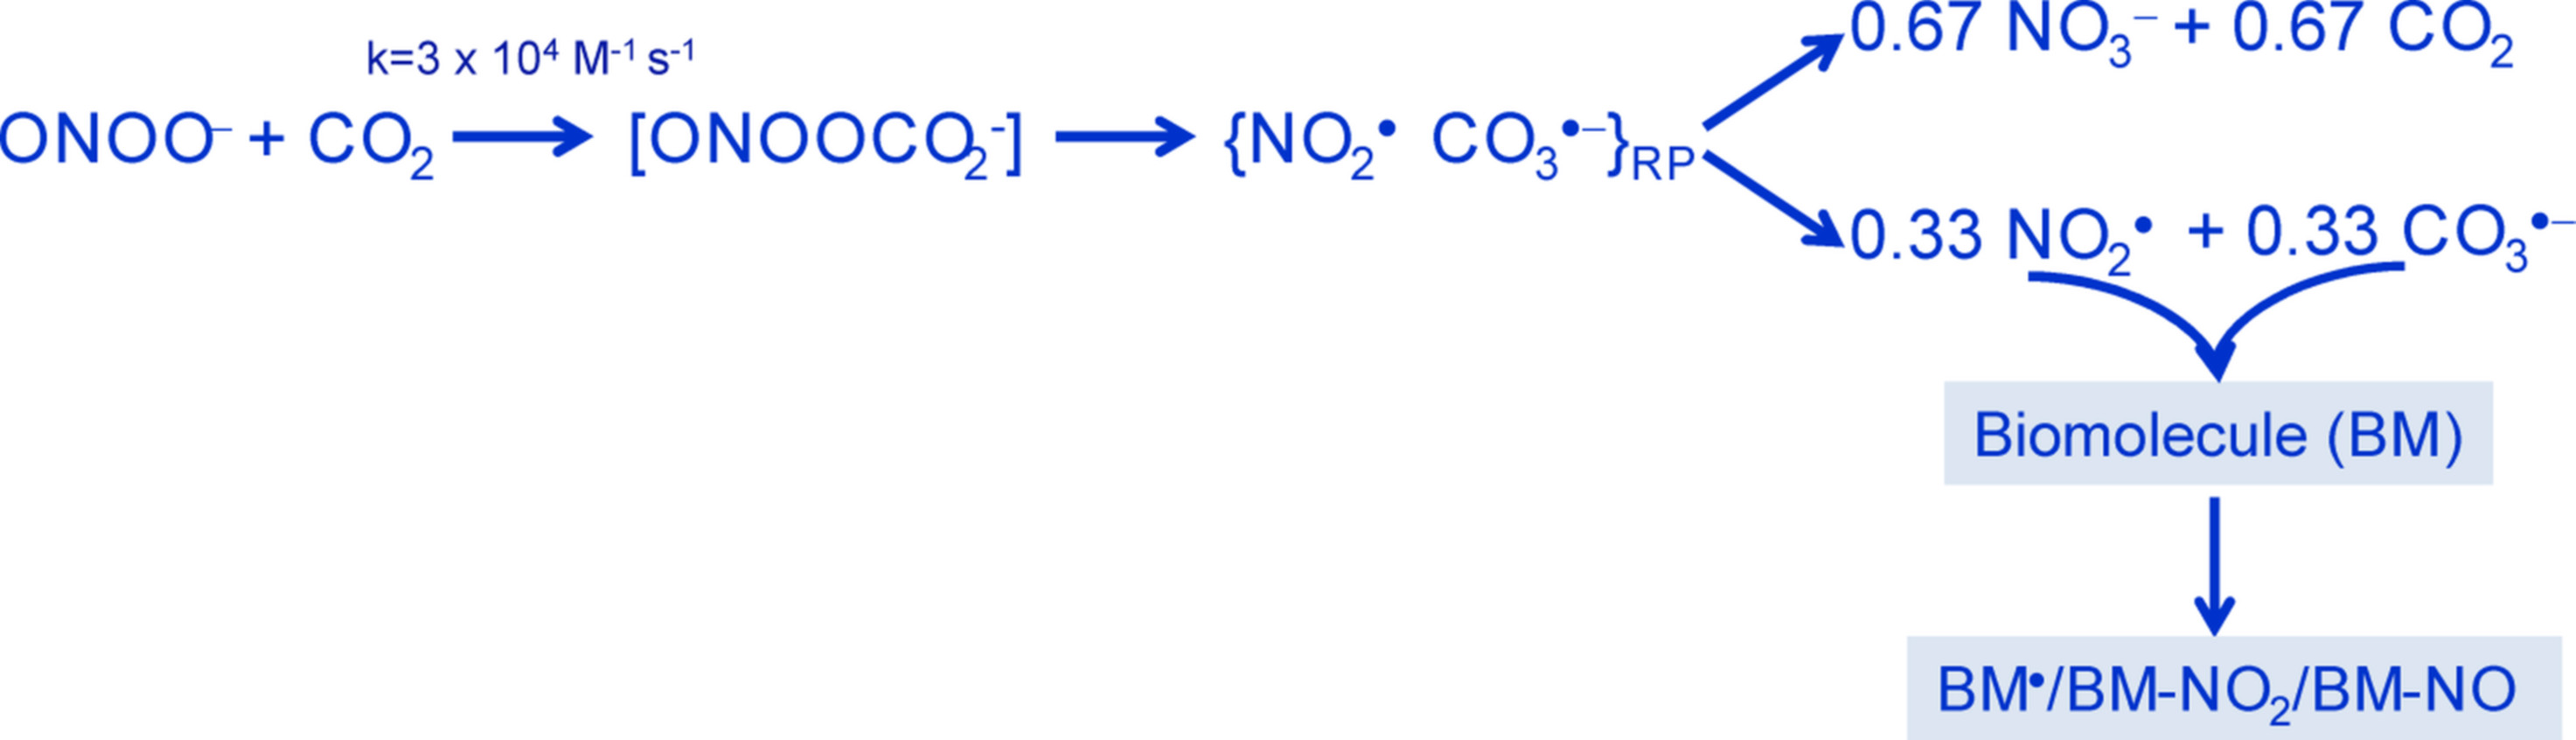 Schematic reaction of peroxynitrite and carbon dioxide